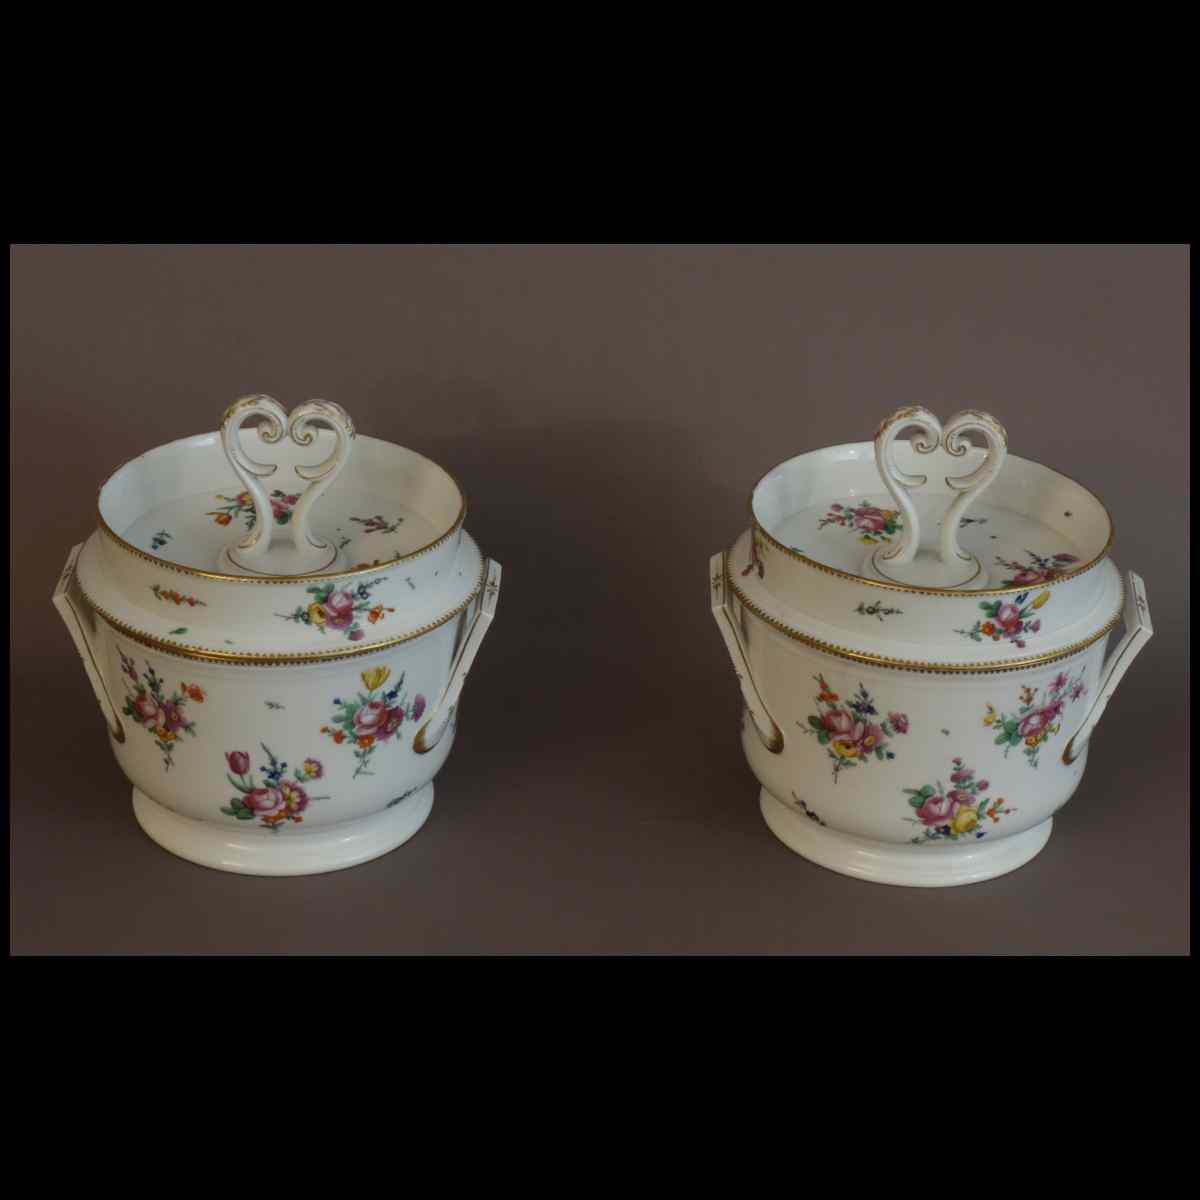 Pair Of Table Coolers XVIIIth